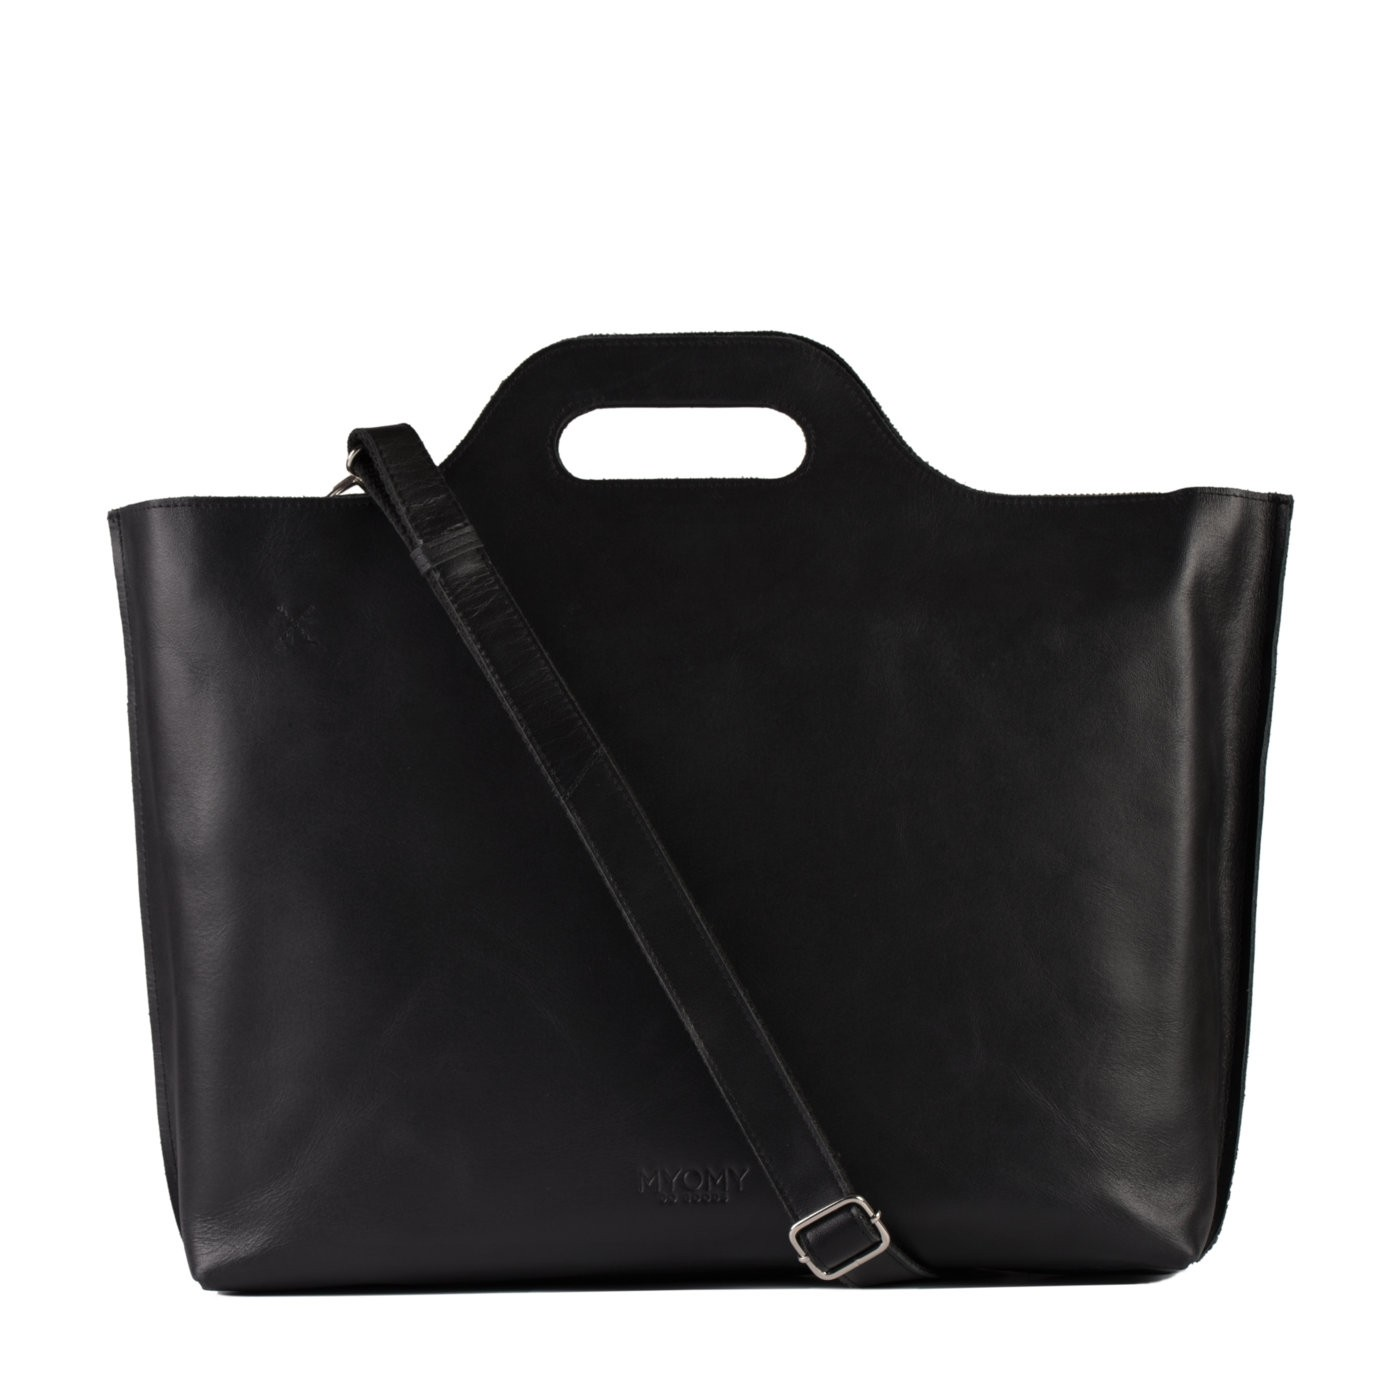 MY CARRY BAG Go bizz – hunter waxy black